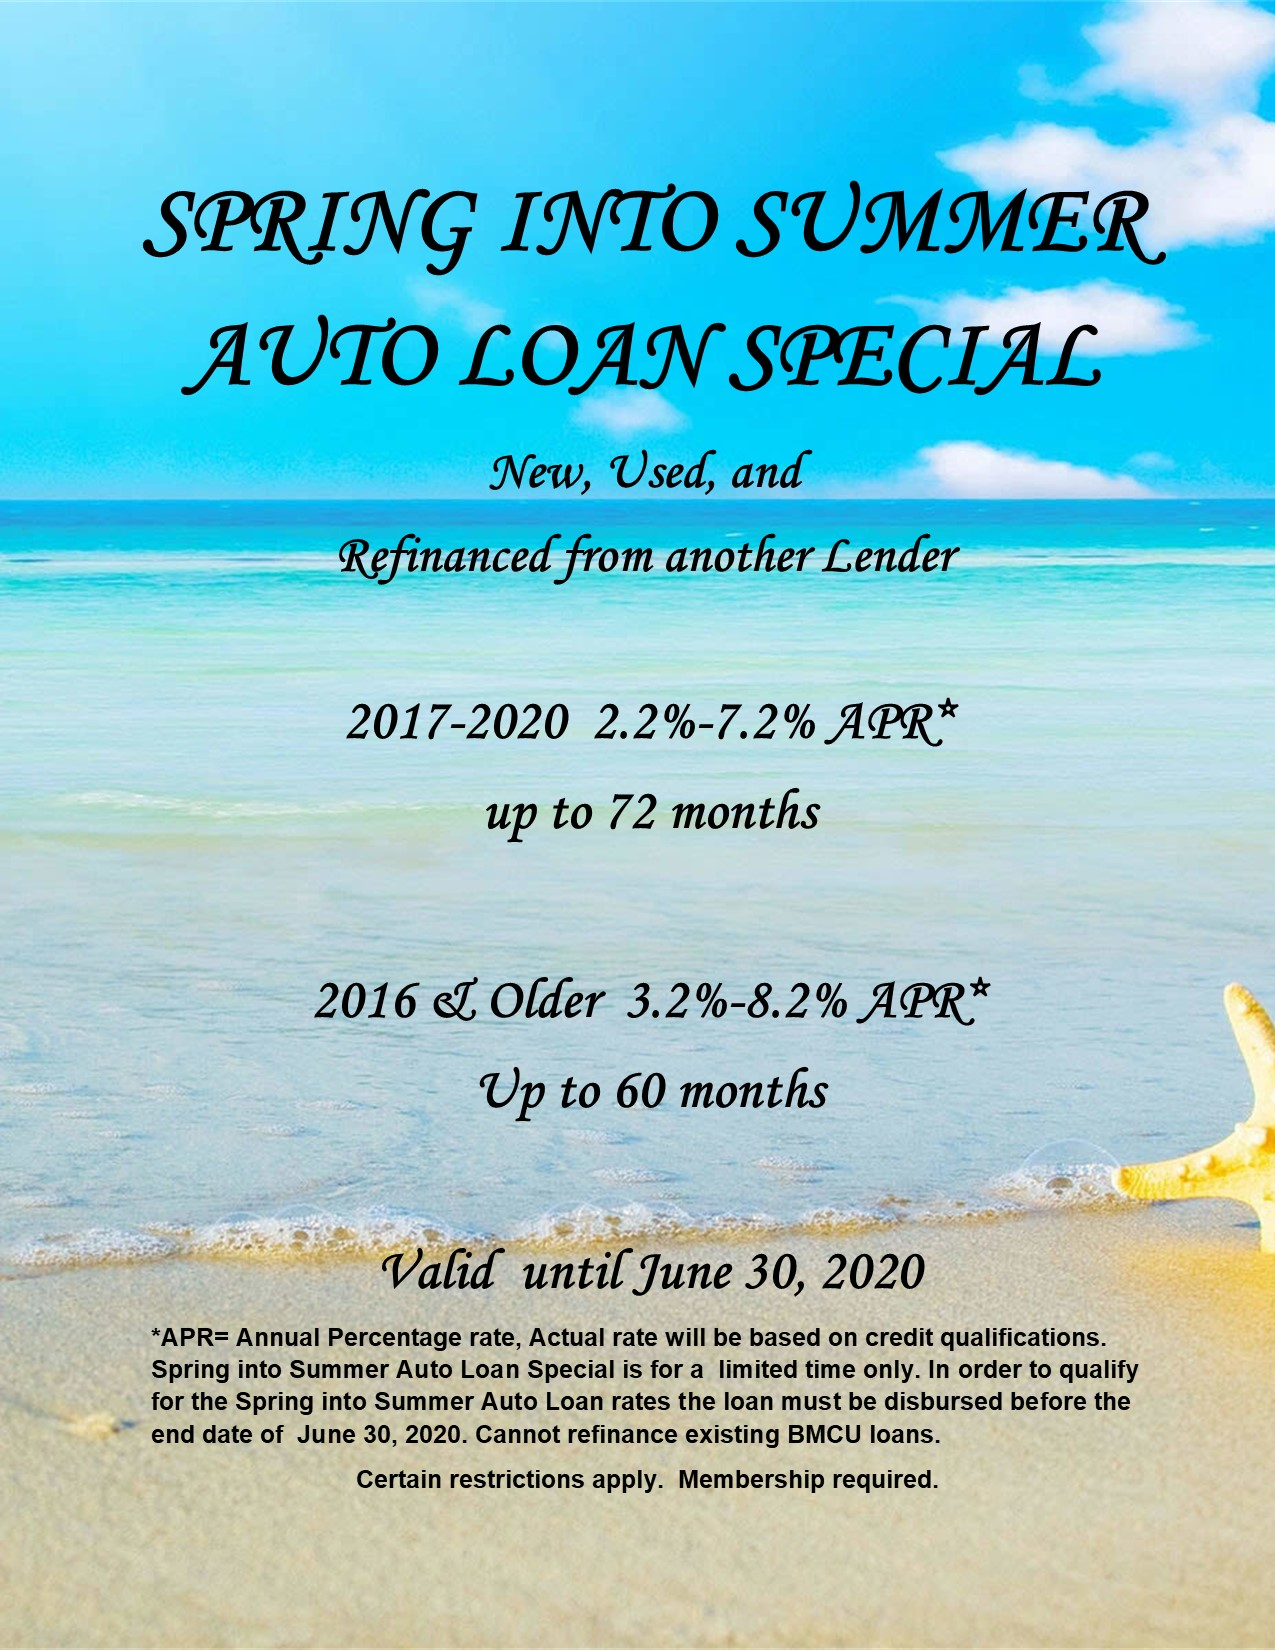 Spring into Summer Auto loan special 2020